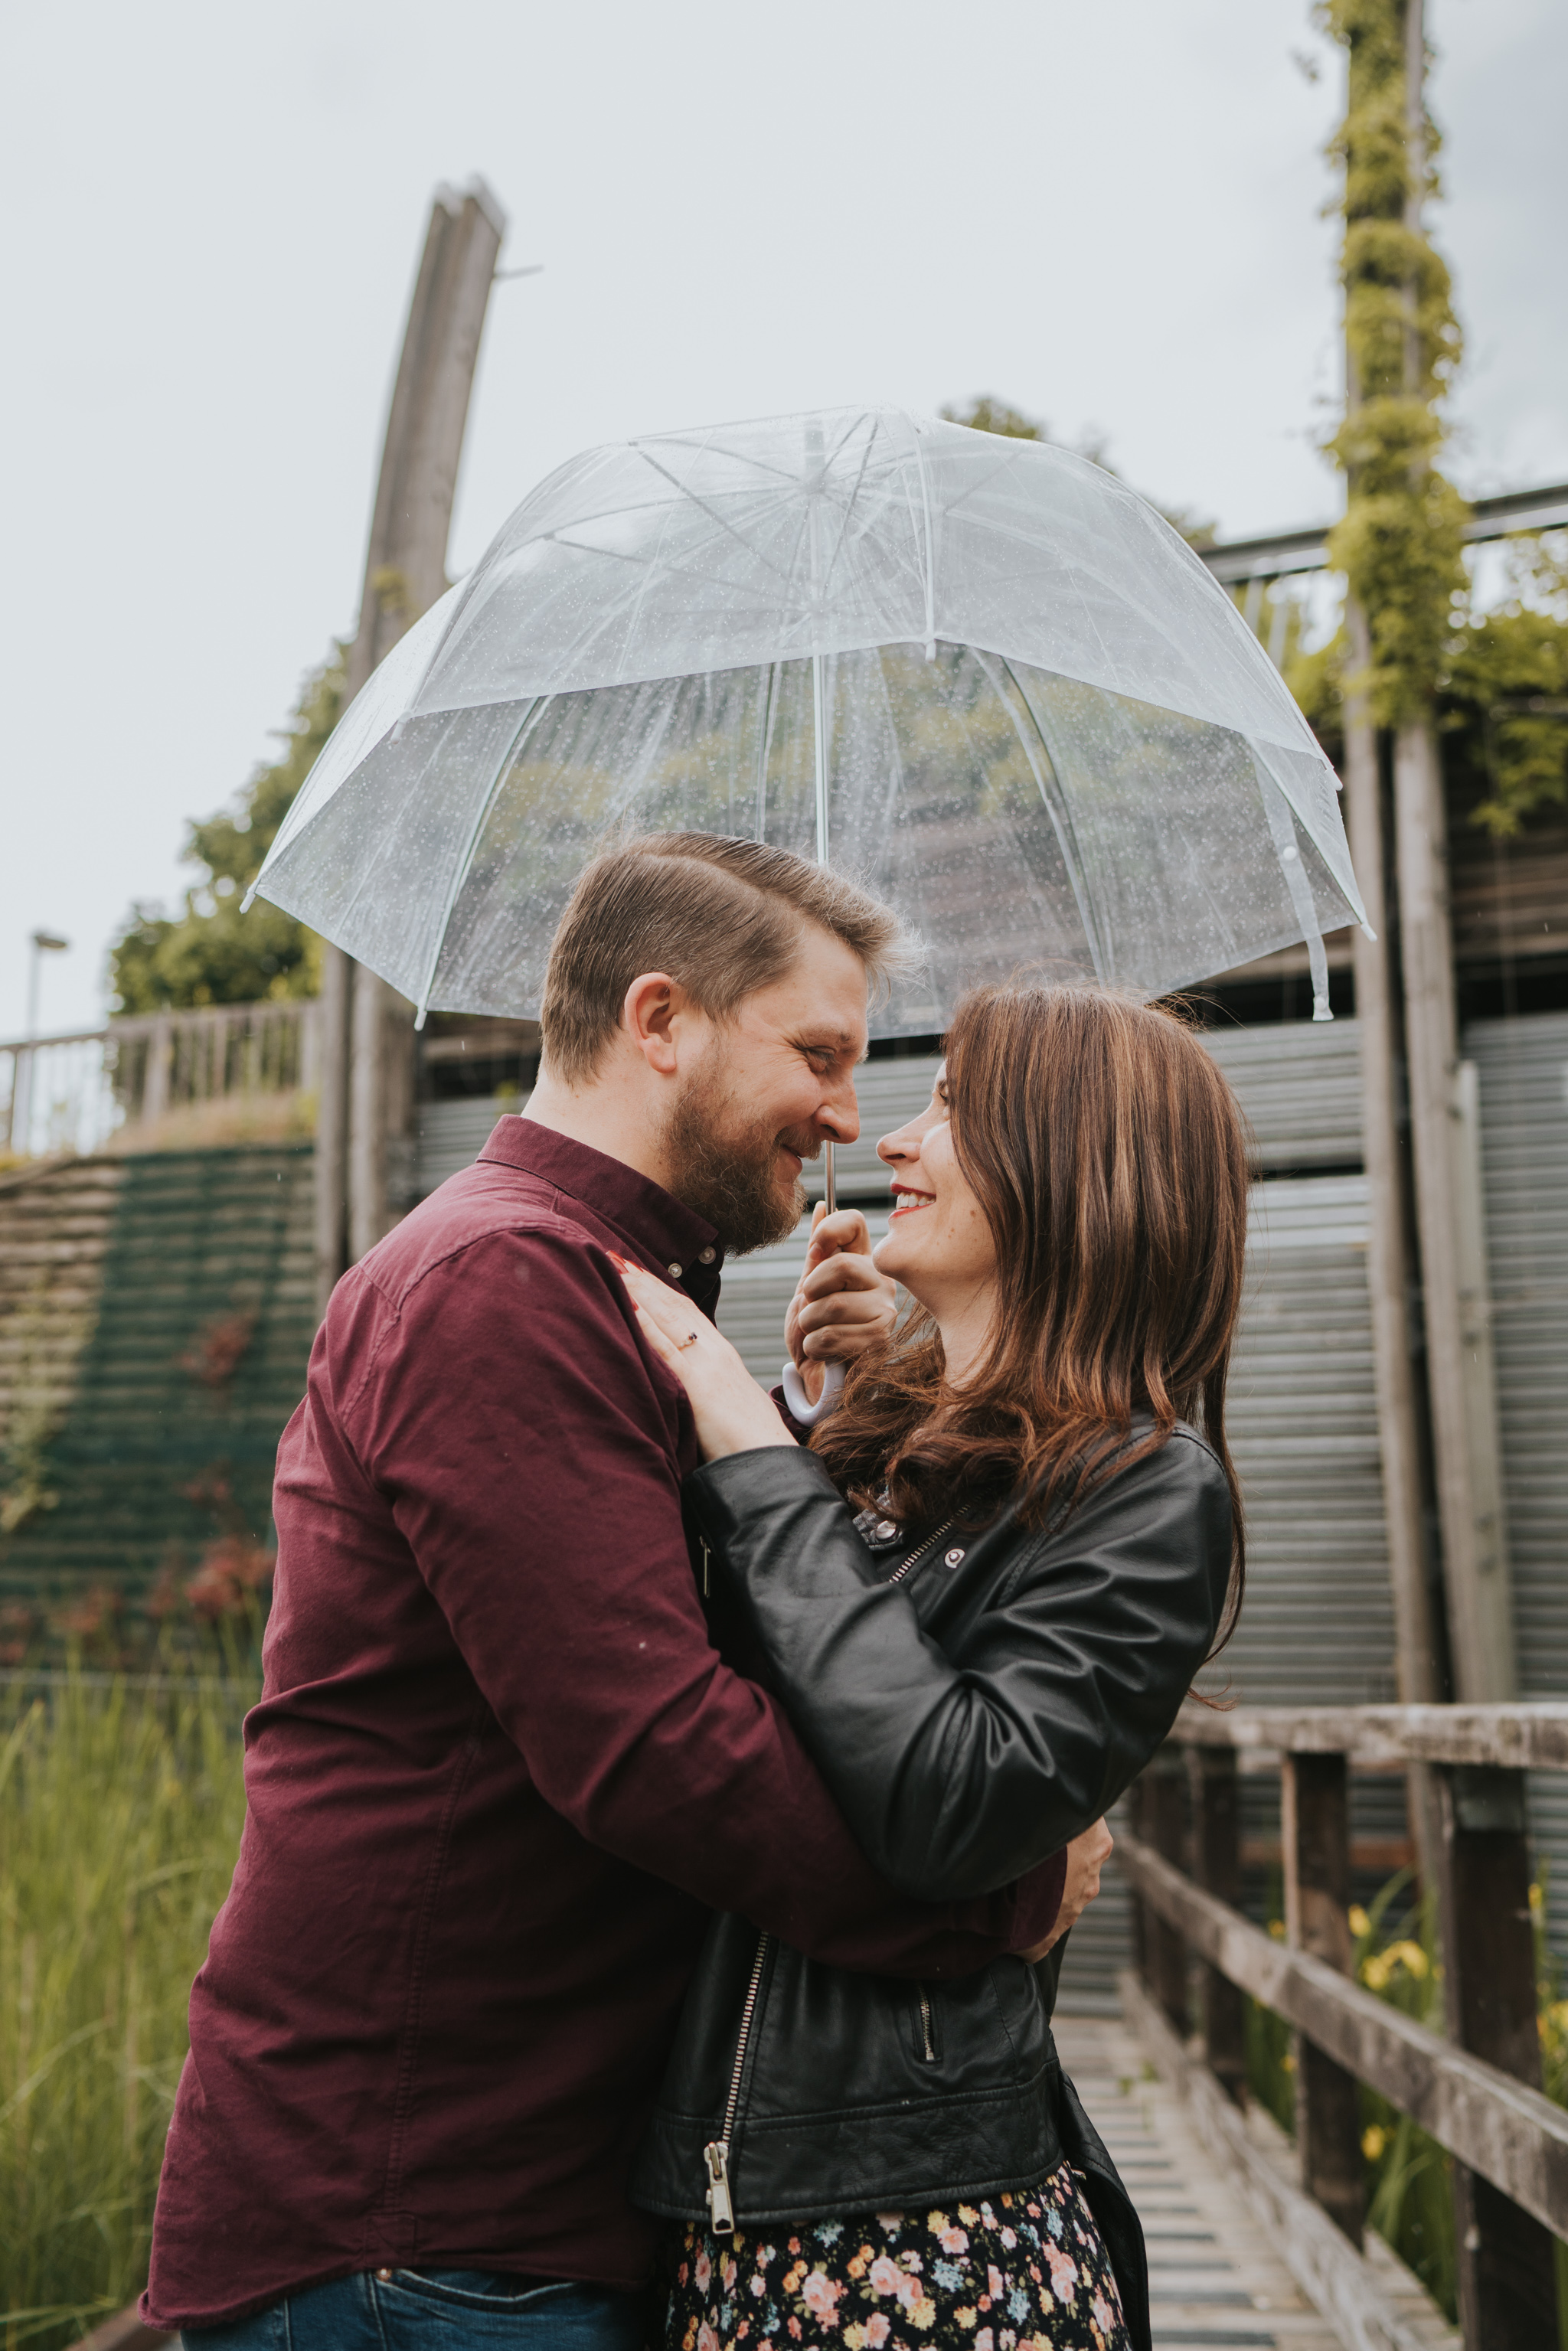 natalie-john-urban-london-engagement-grace-elizabeth-colchester-essex-alternative-wedding-photographer-essex-suffolk-norfolk-devon (27 of 66).jpg